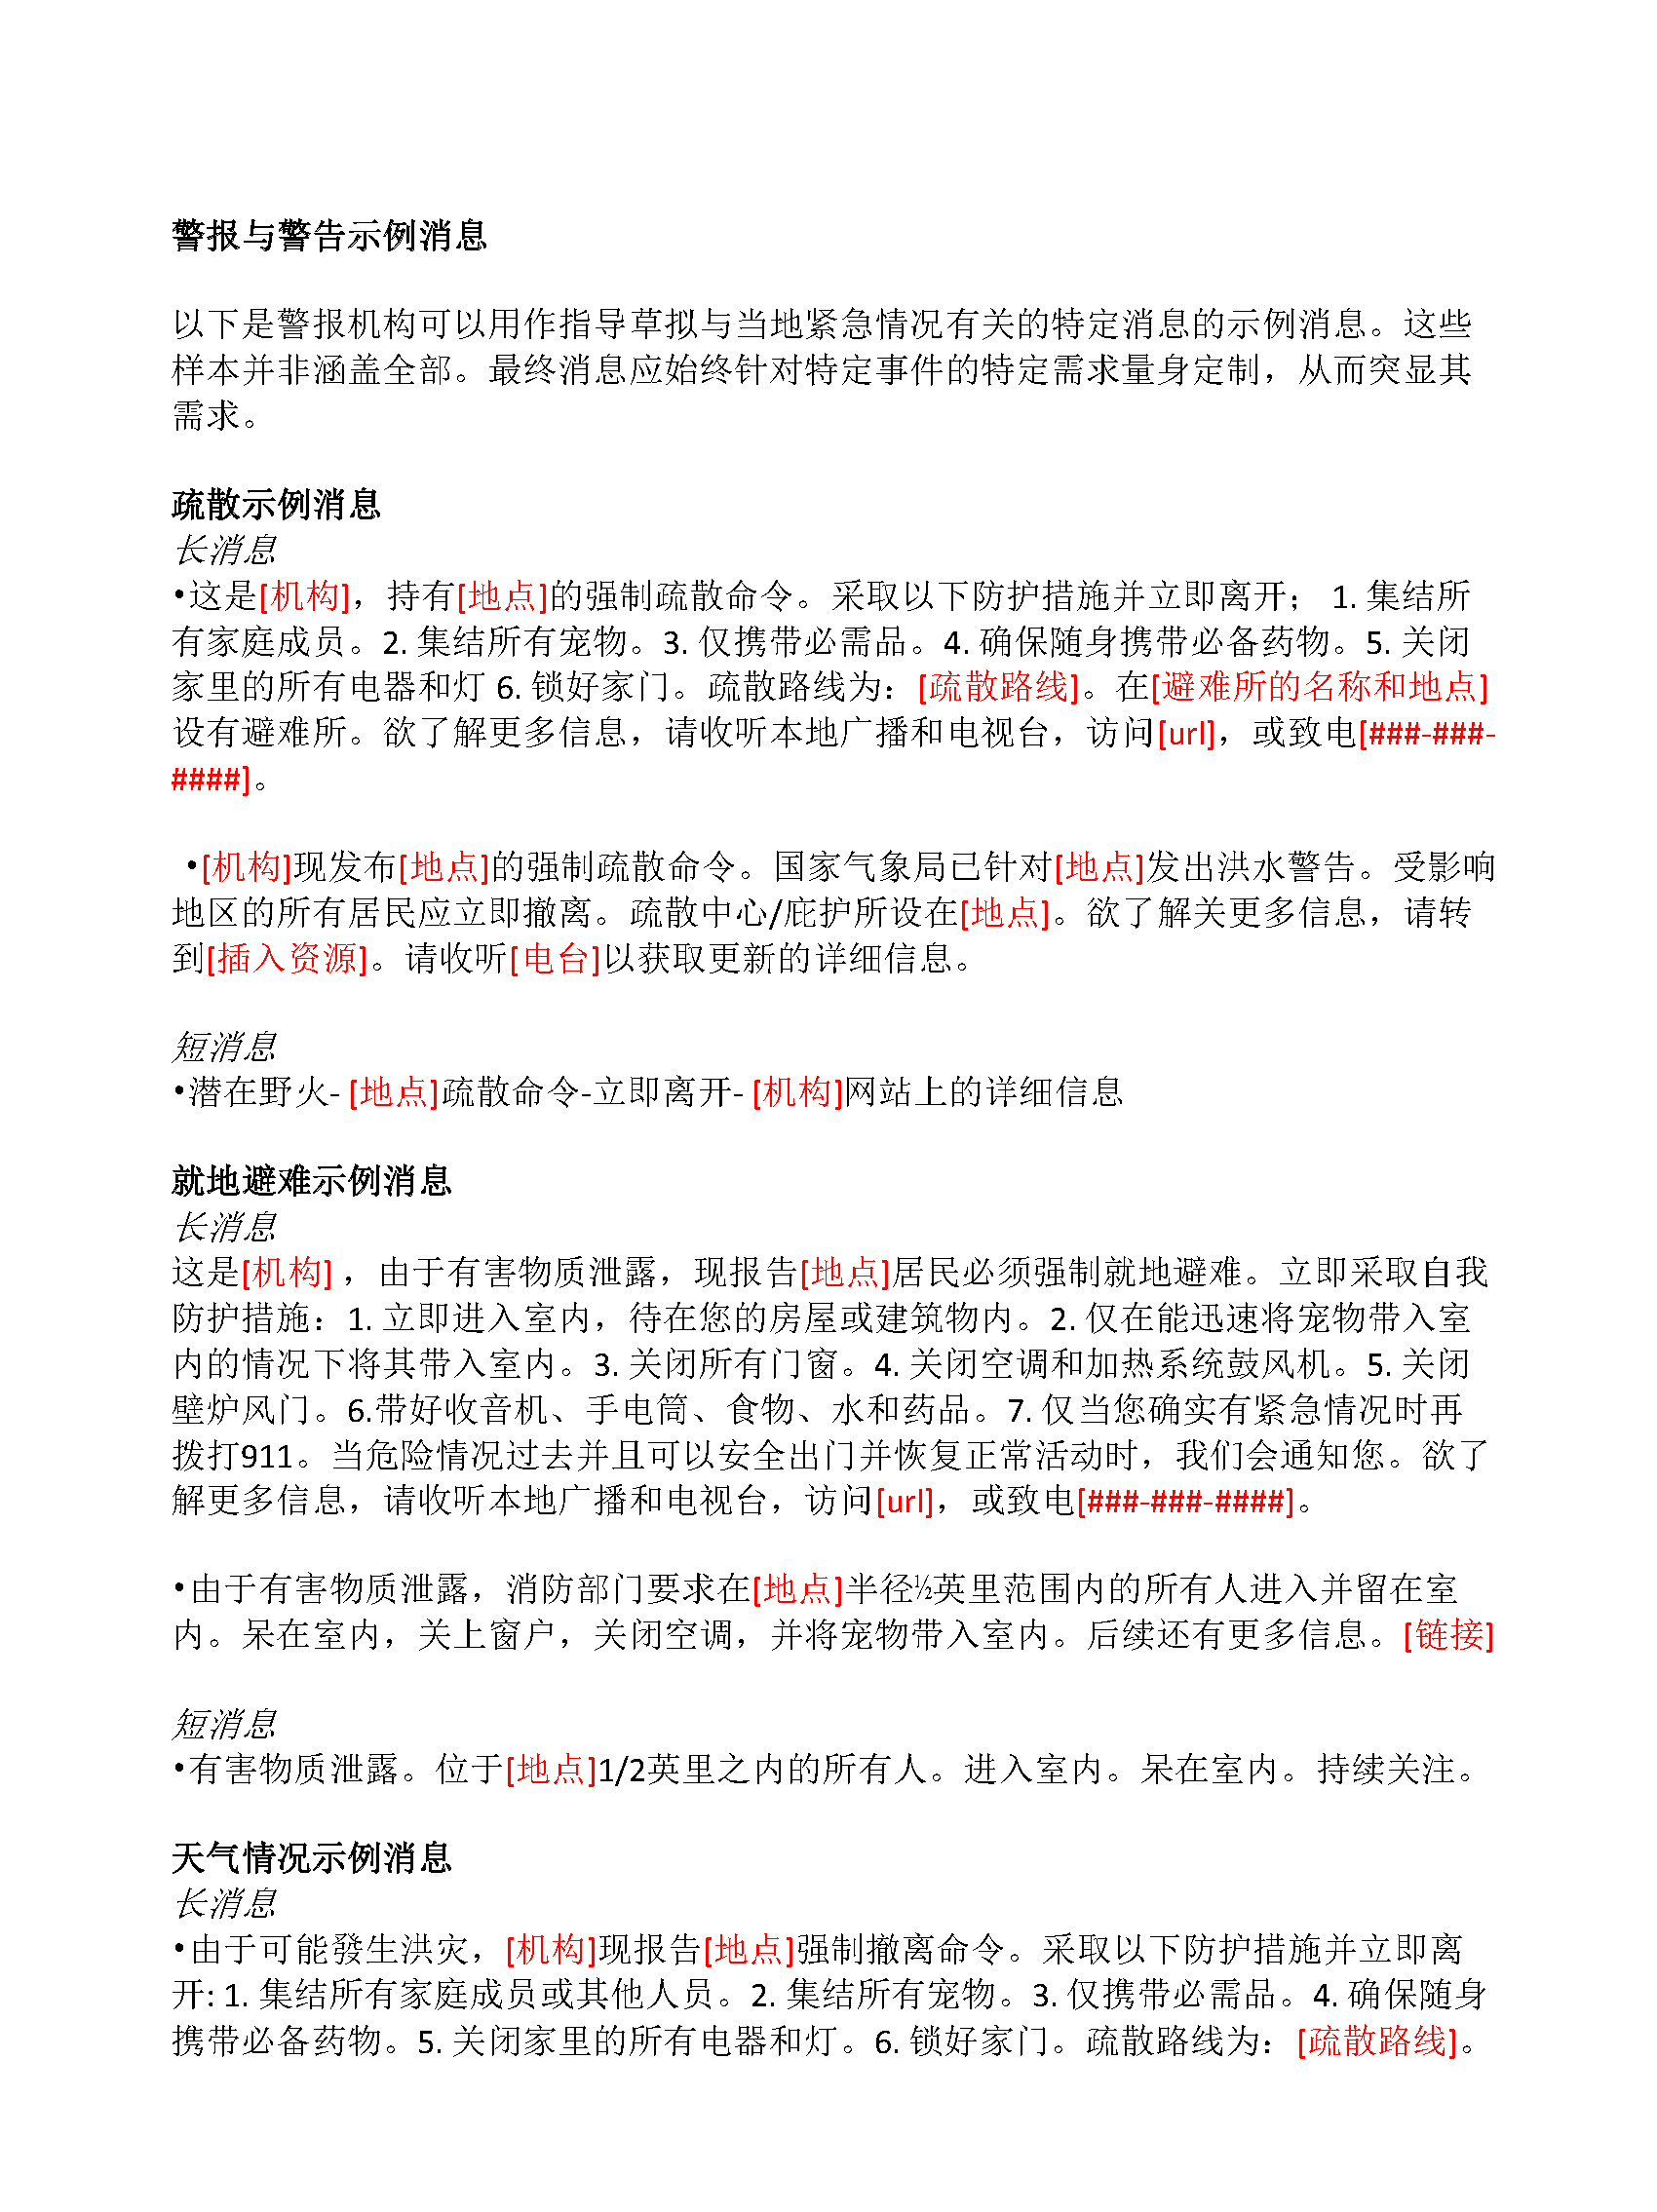 Image of the Sample AW Messages Simplified Chinese document